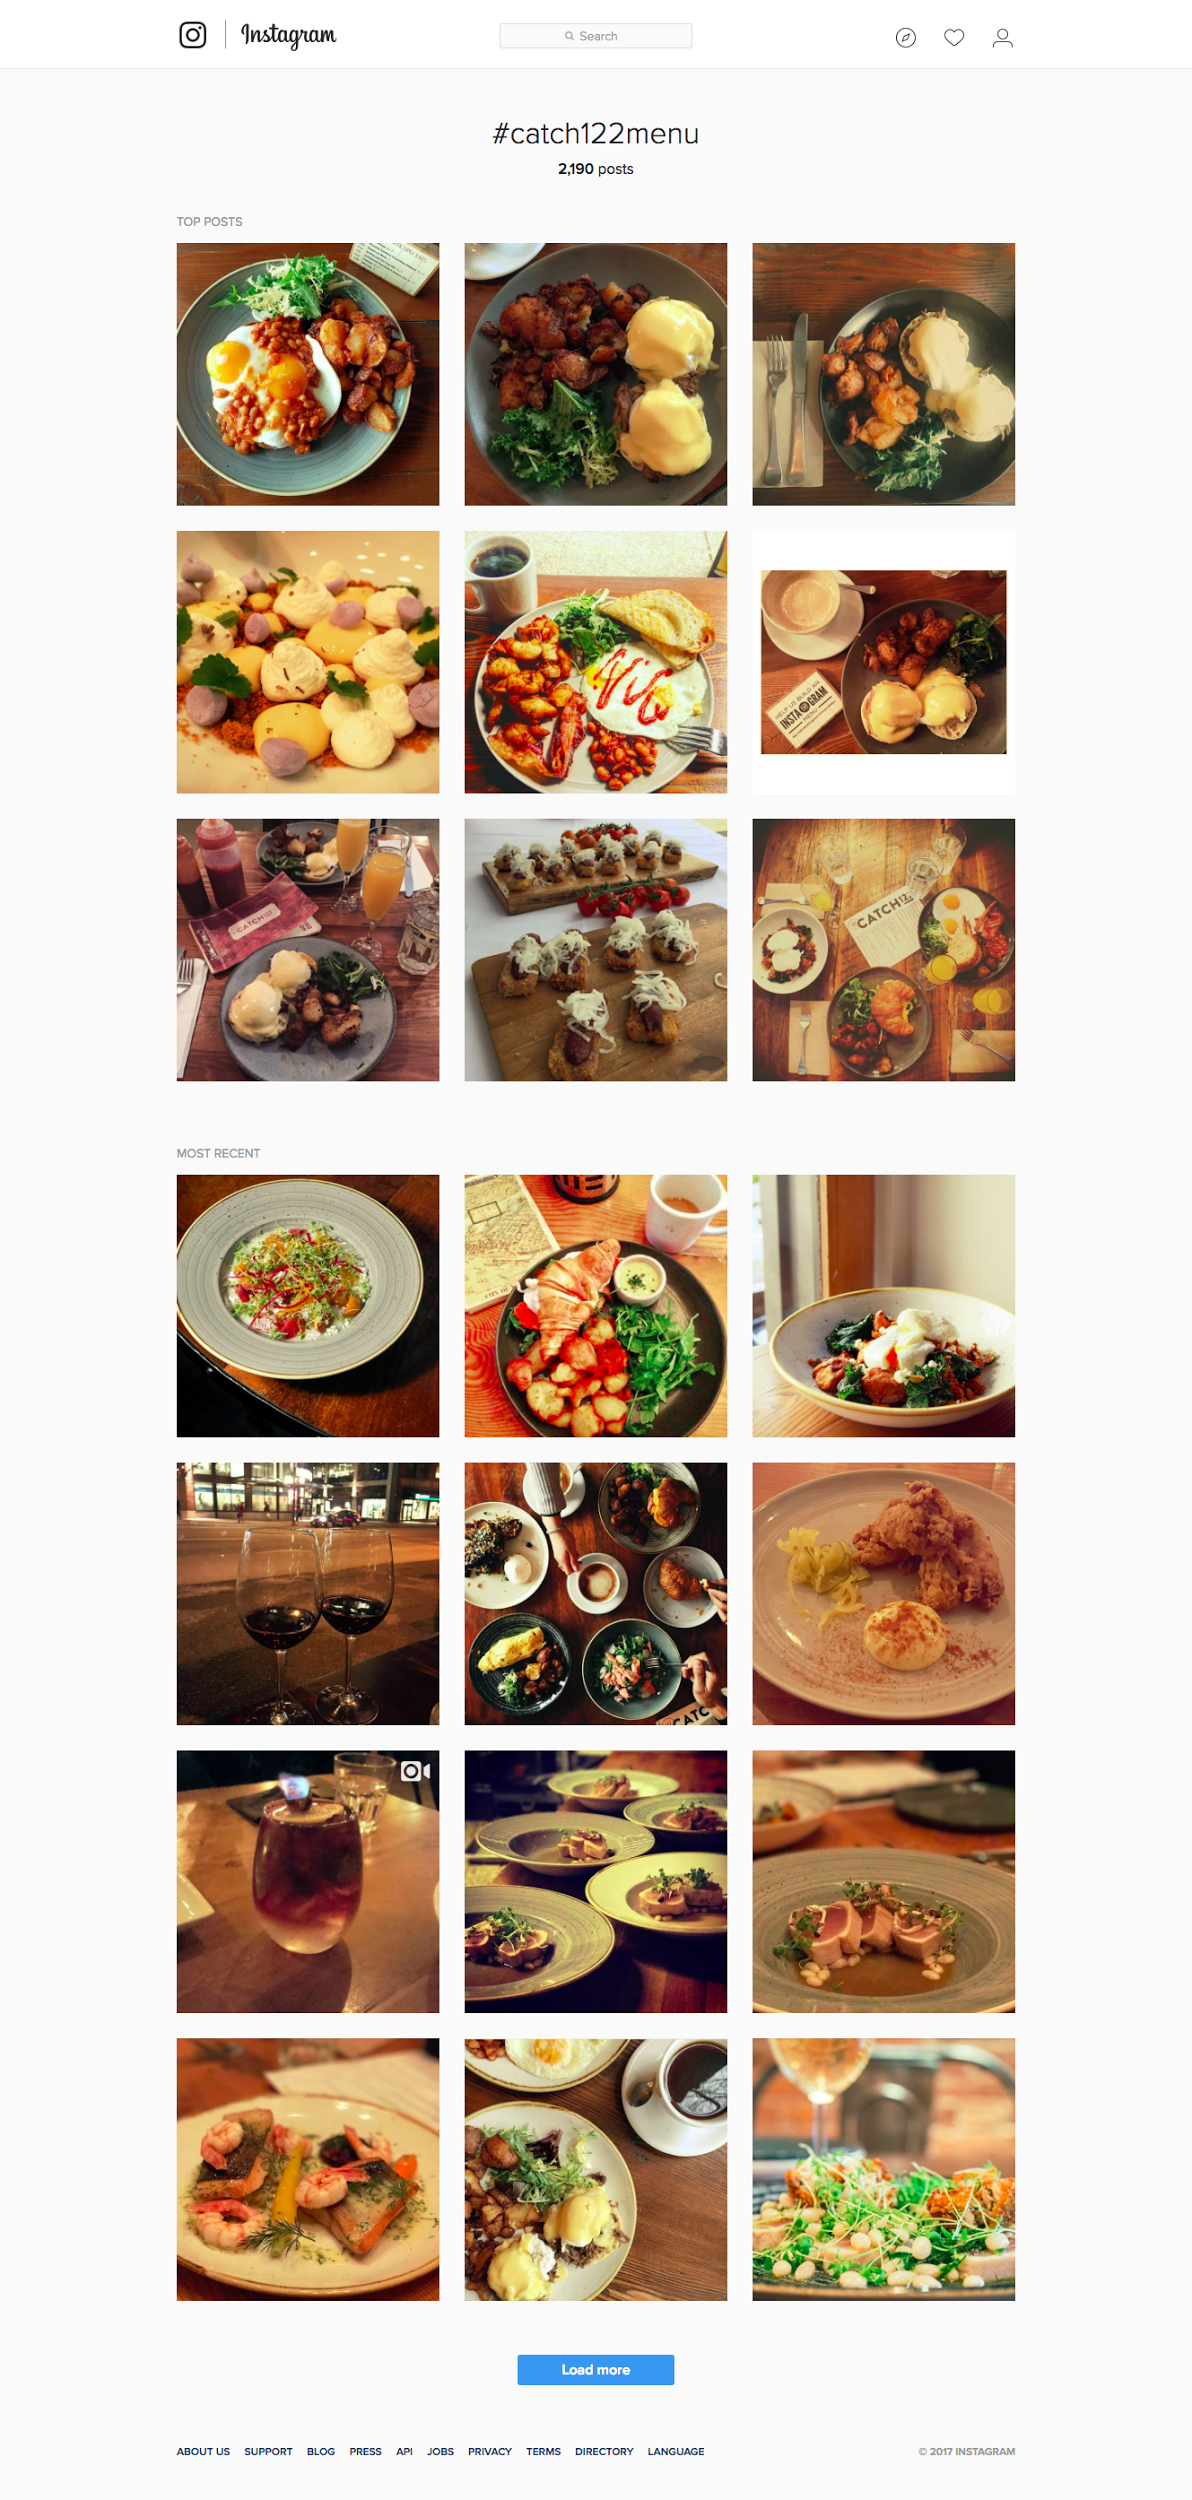 Food and restaurant advertising tips Instagram food